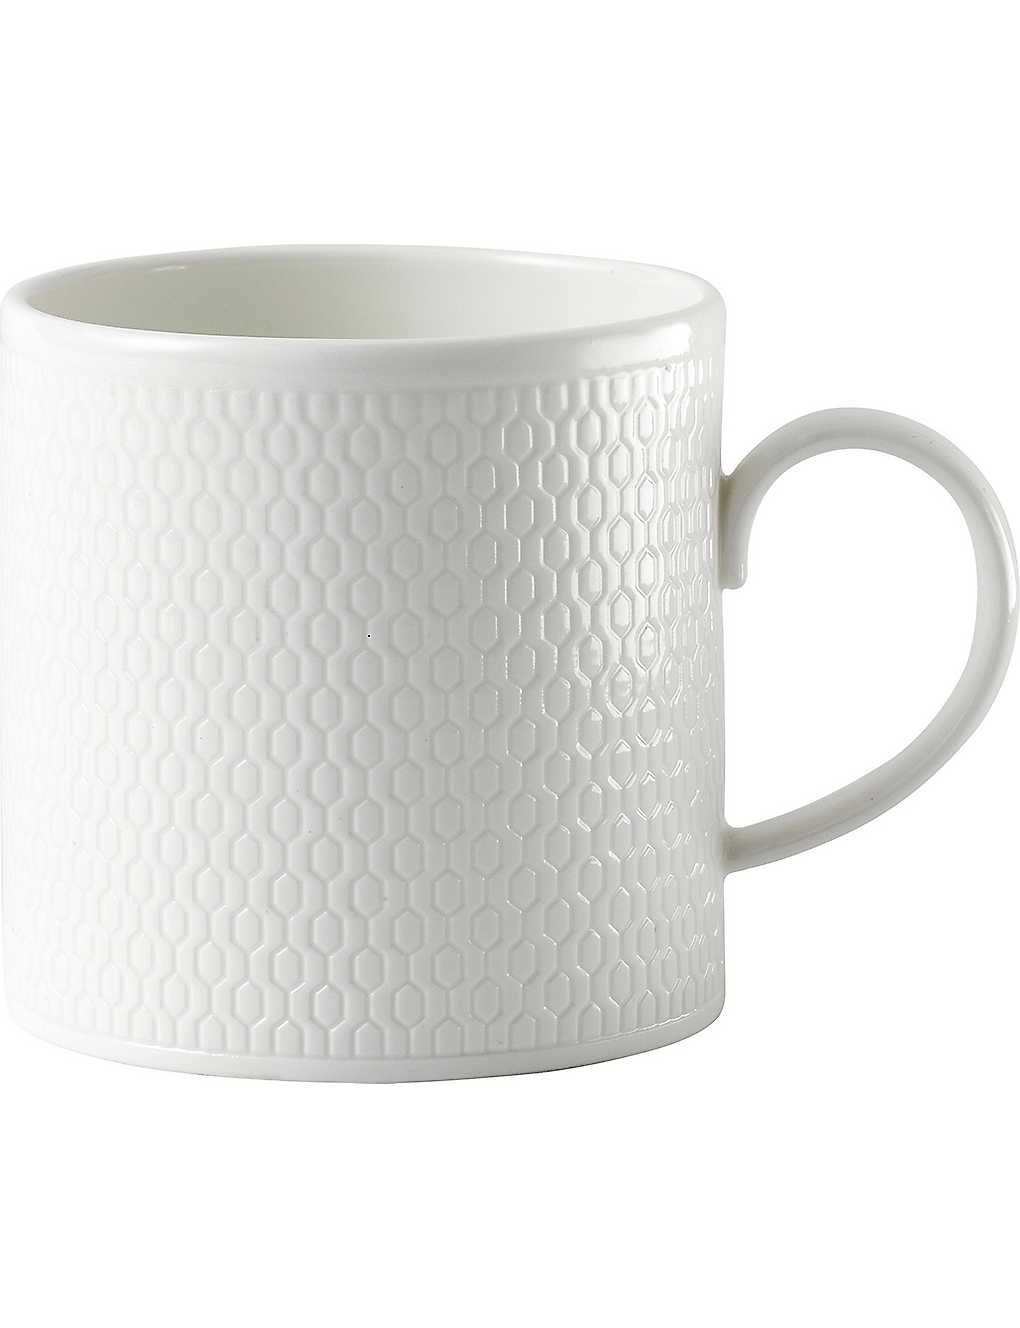 WEDGWOOD: Gio fine bone china mug 300ml